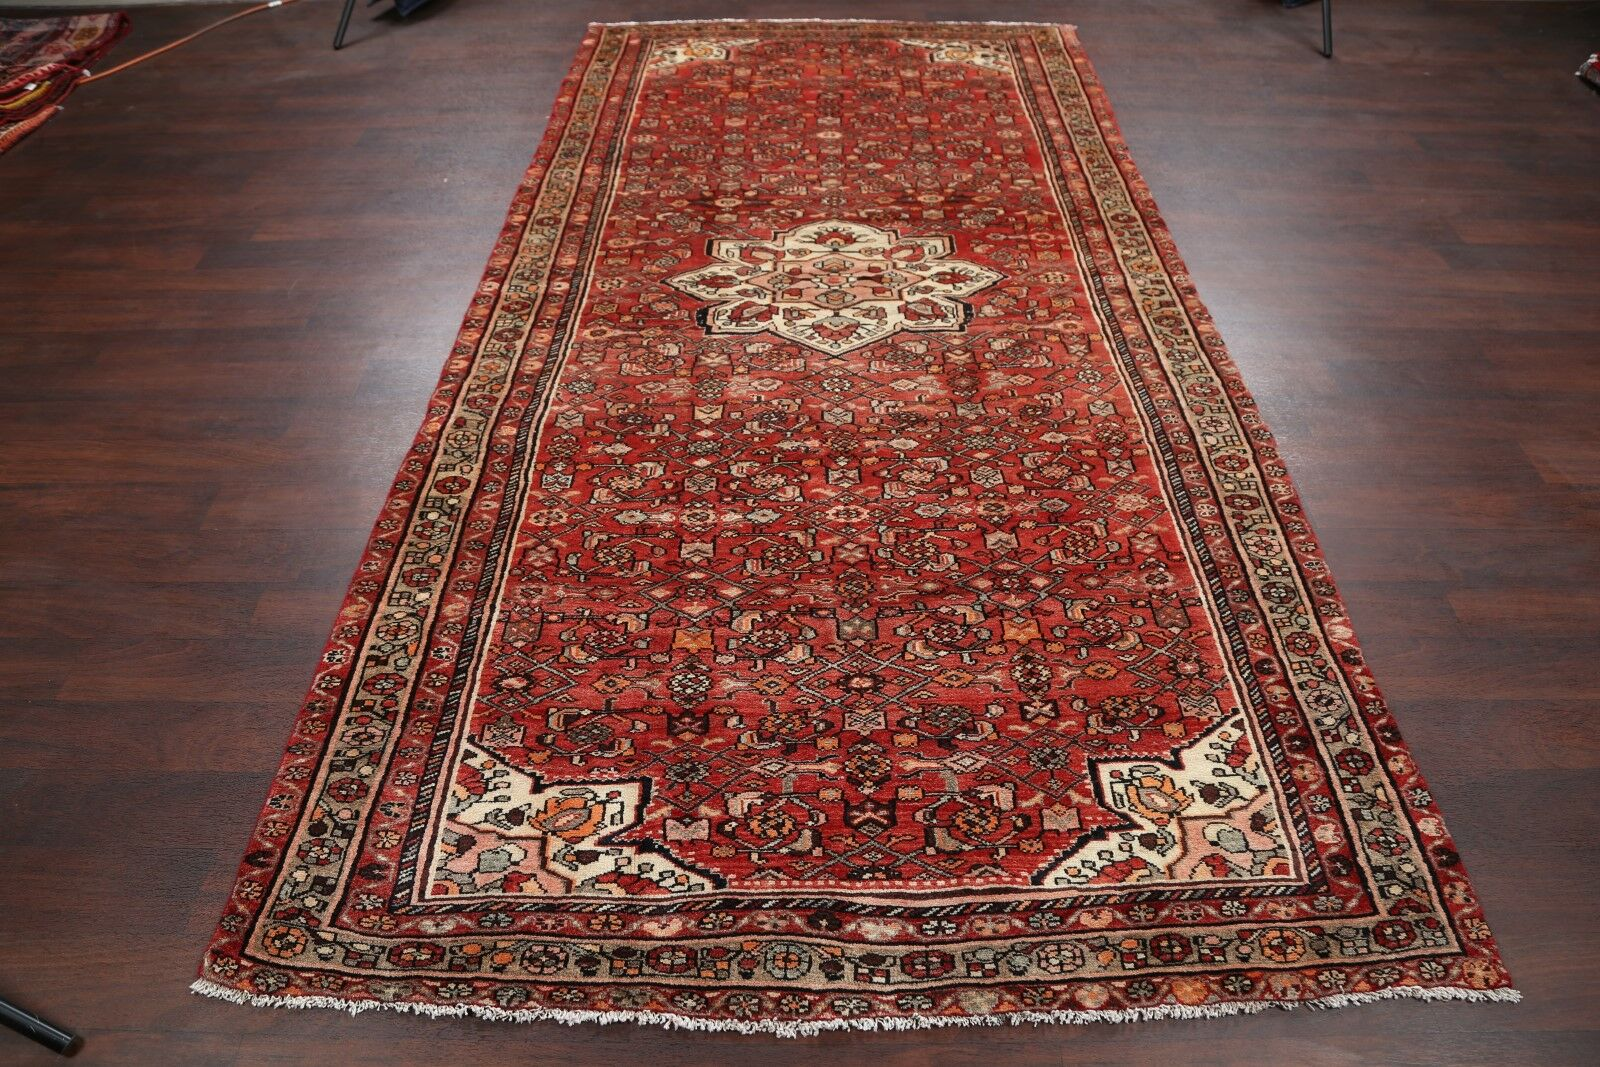 One-of-a-Kind Hamedan Persian Hand-Knotted 5'4